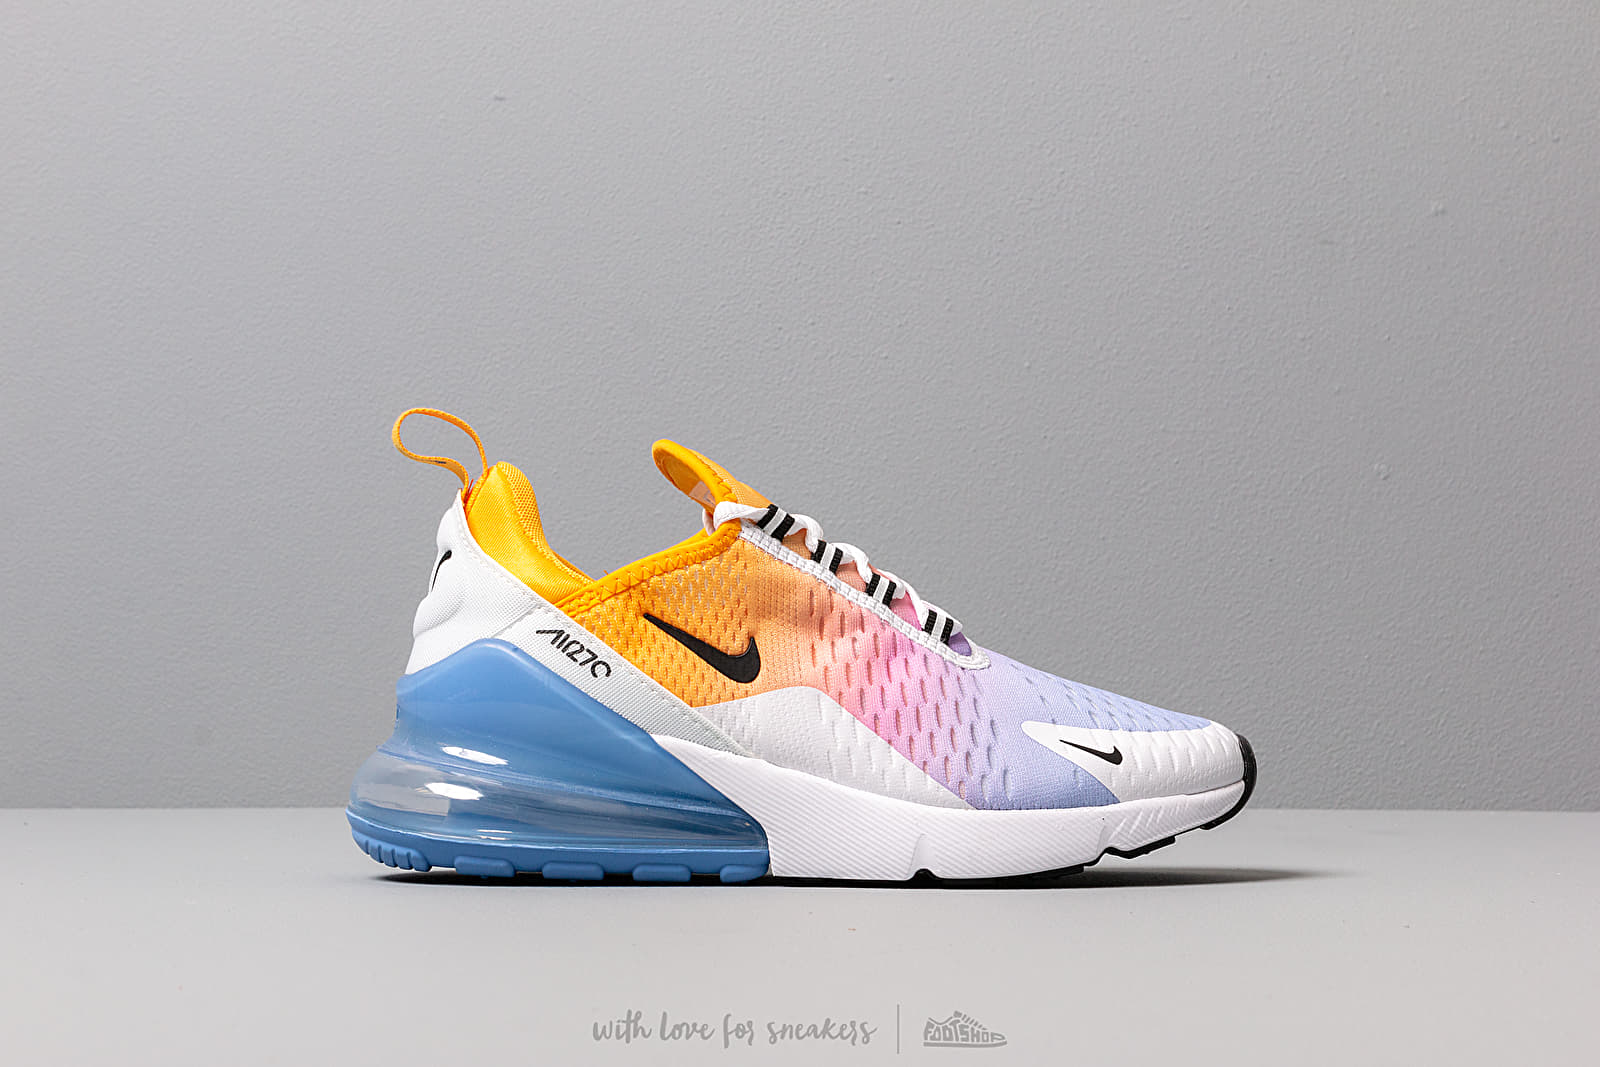 Nike W Air Max 270 University Gold Black University Blue